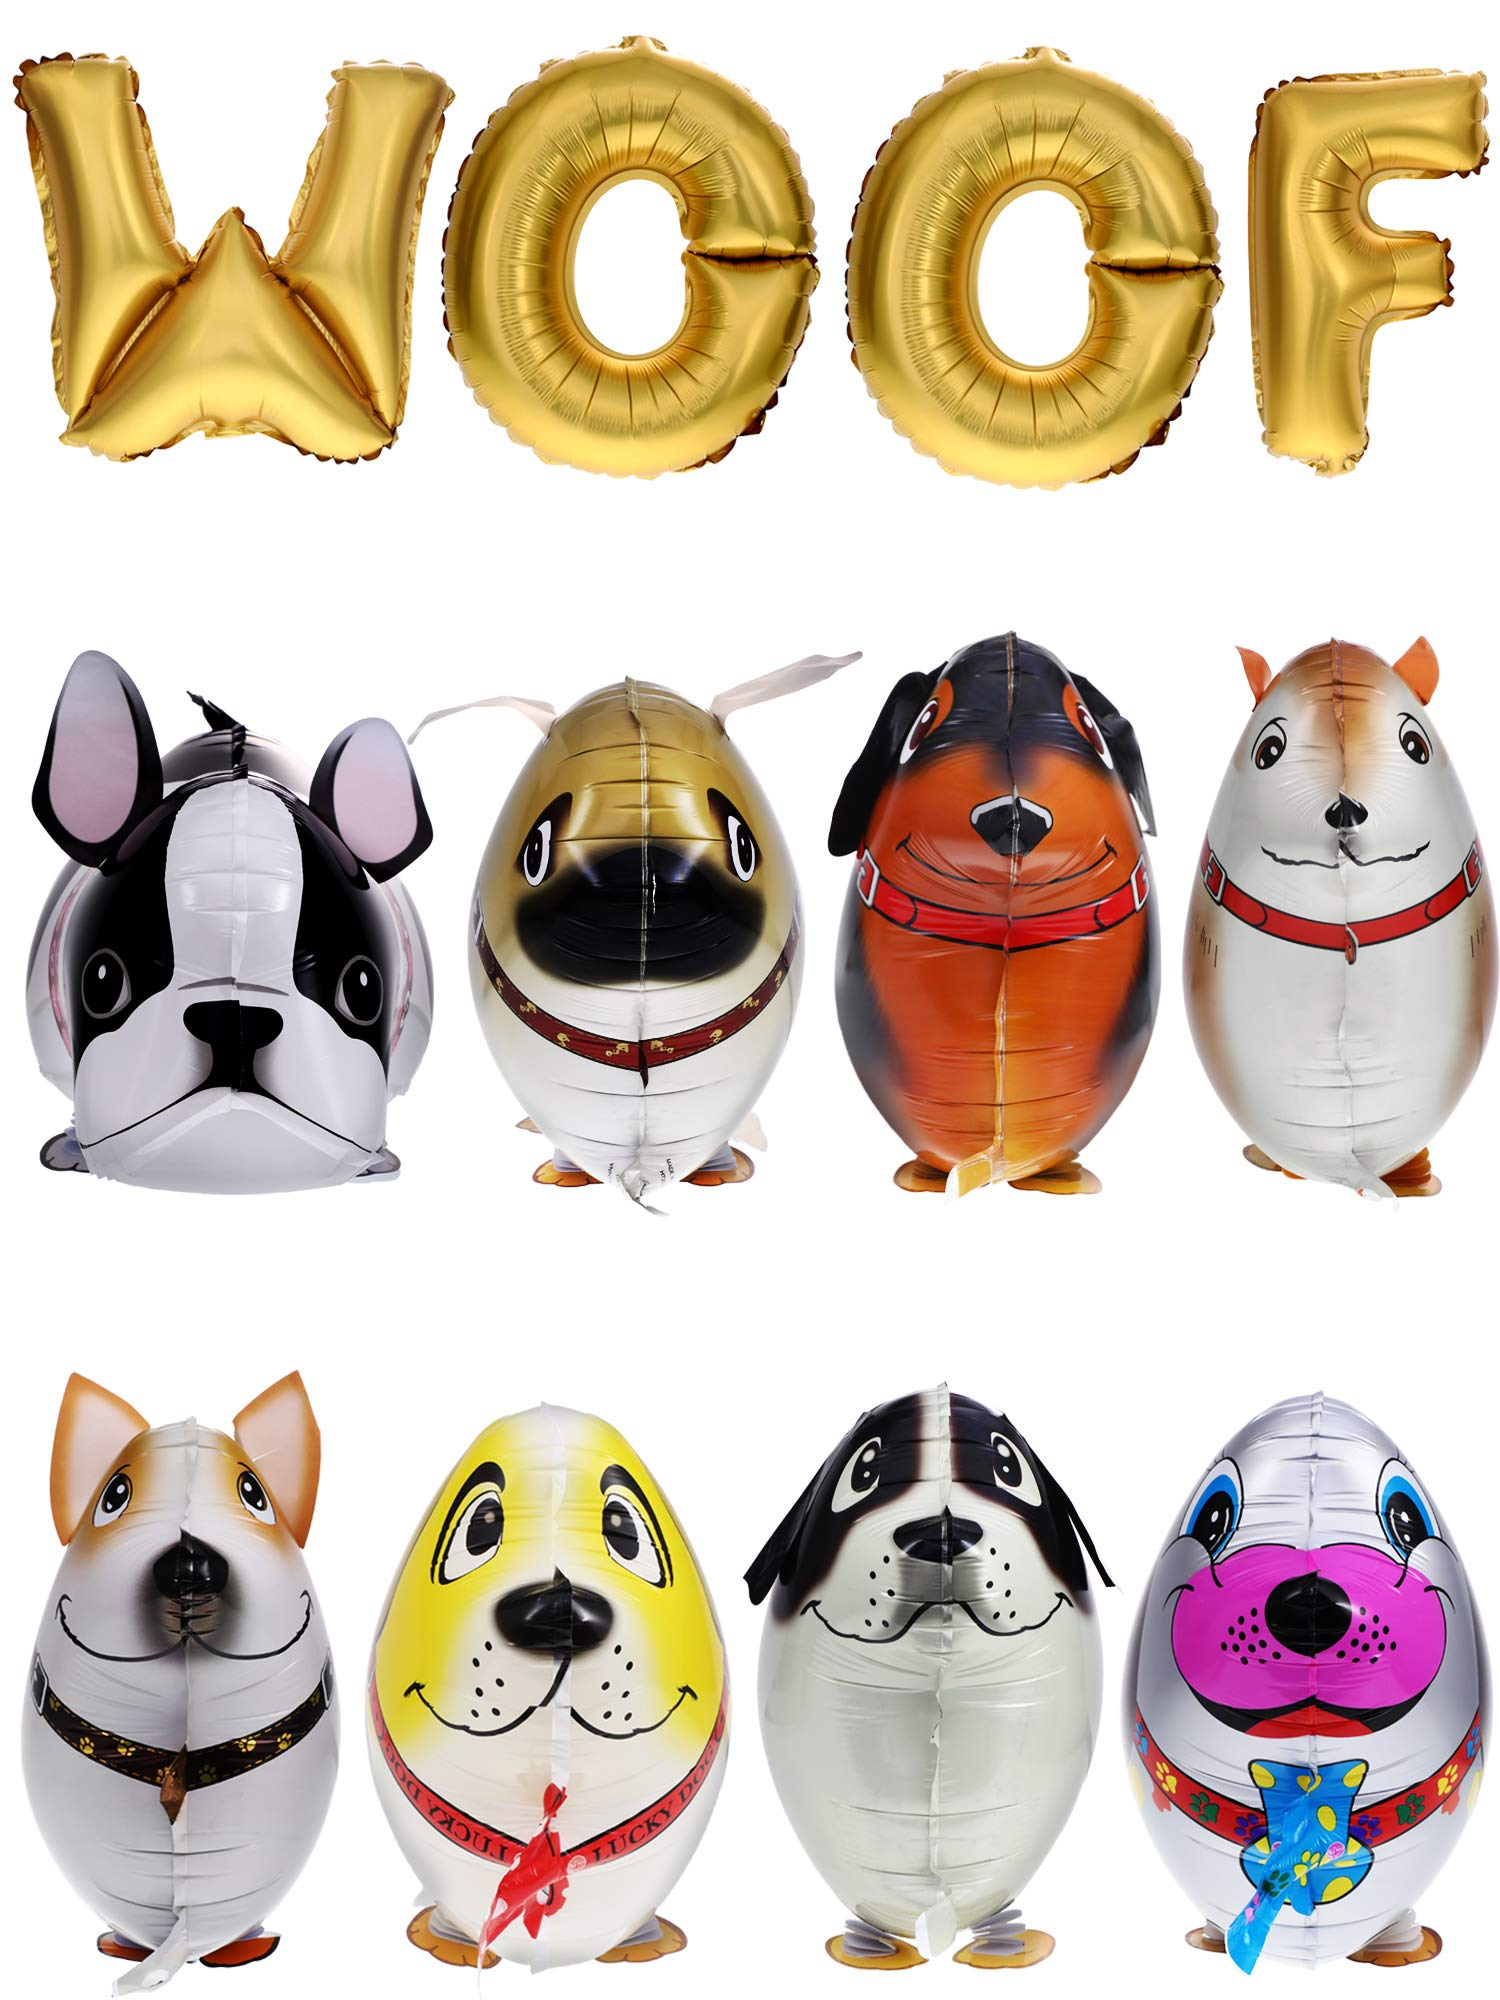 Gejoy 12 Pieces Walking Animal Balloons Pet Dog Balloons WOOF Letter Balloons Dog Birthday Themed Party Decorations Supplies